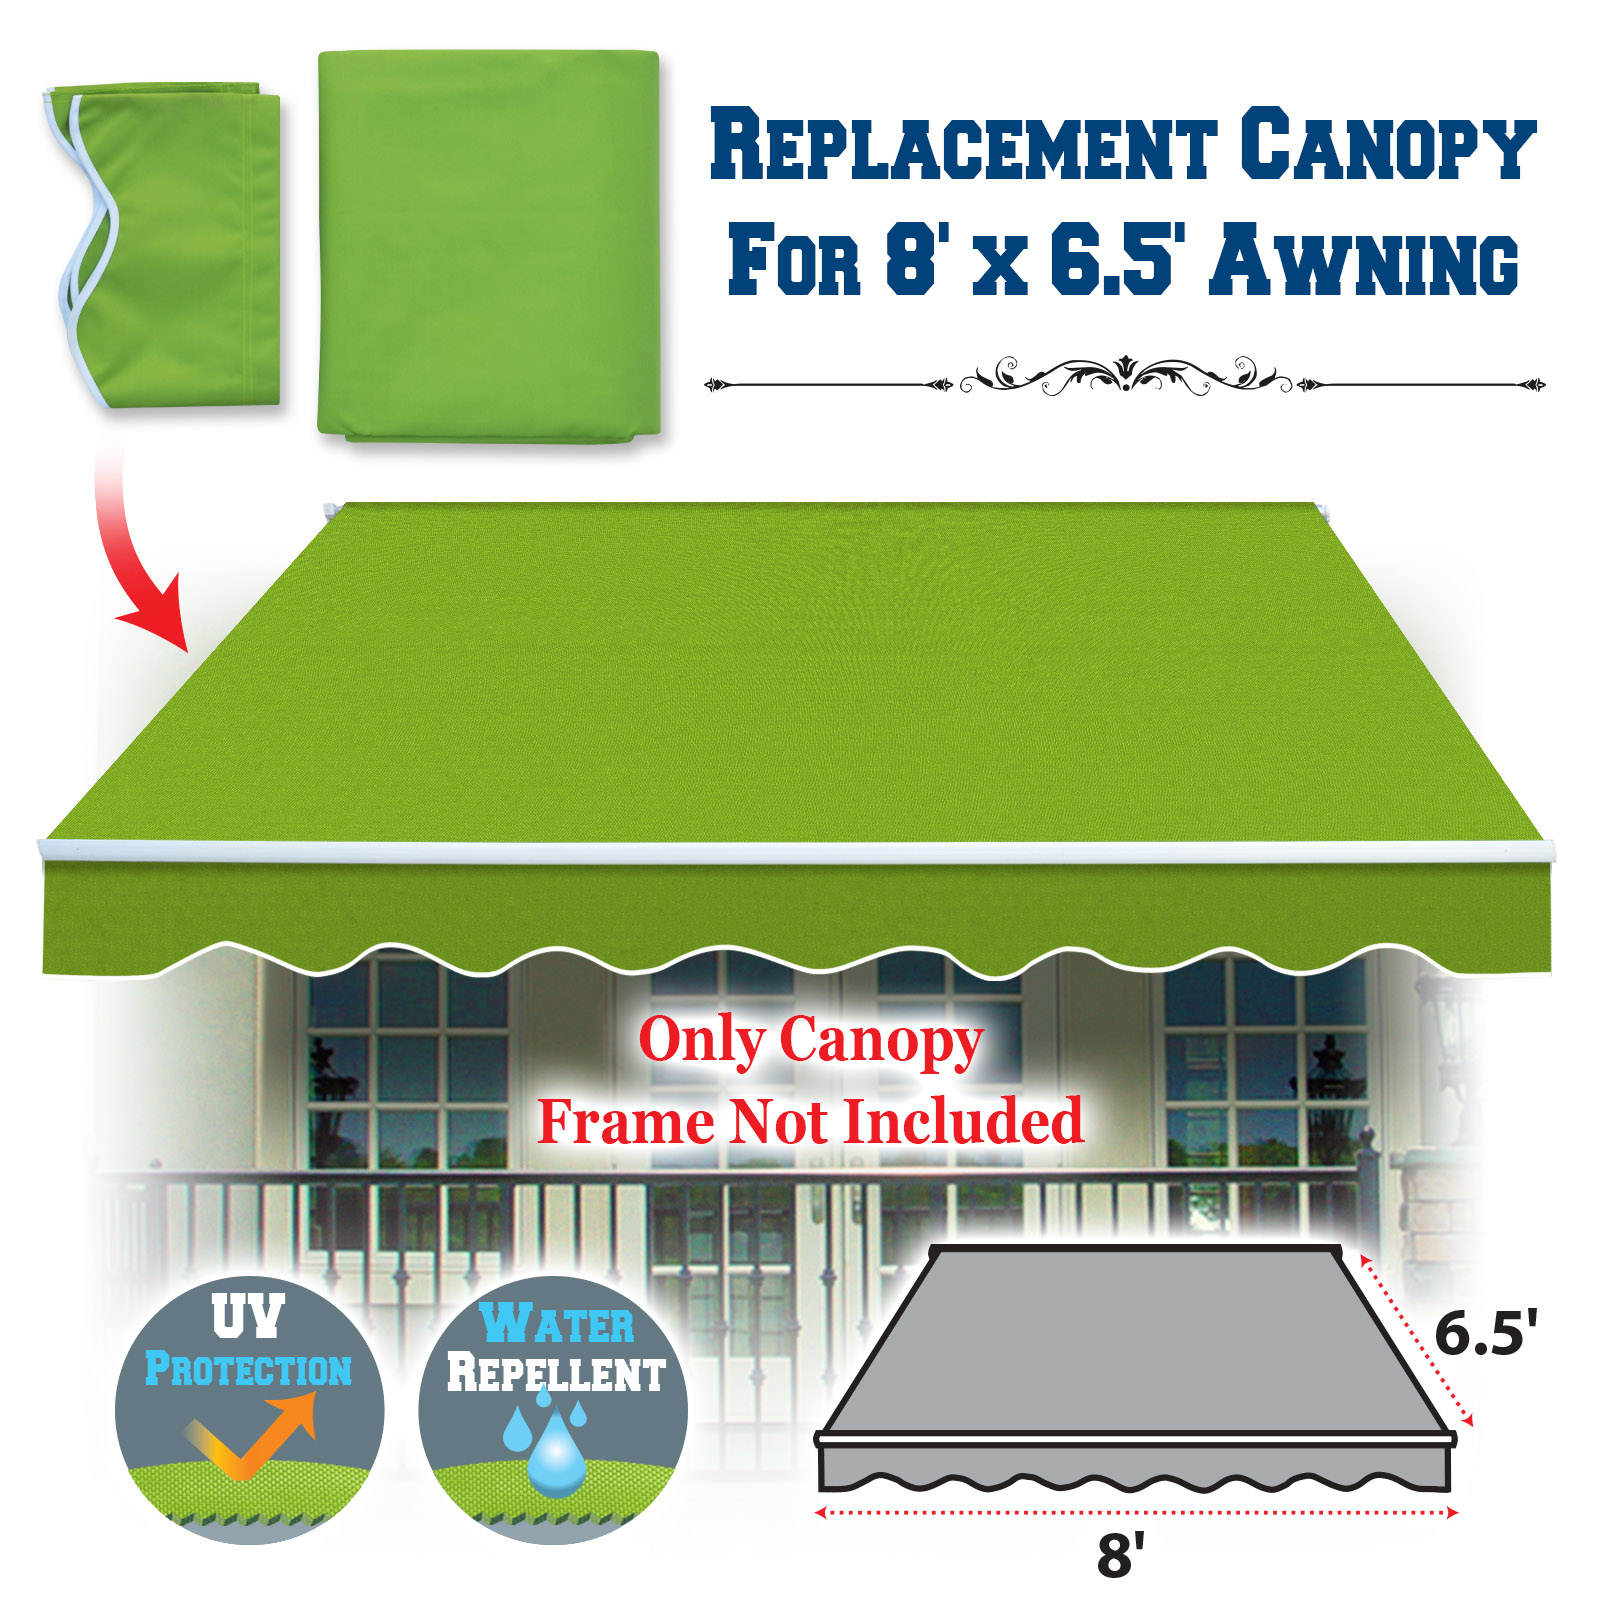 Sunrise Outdoor 8' x 6.4' Replacement Canopy for Manual Yard Retractable Patio Deck Awning Sunshade (Cover Only, Frame is not Included)-Coffee